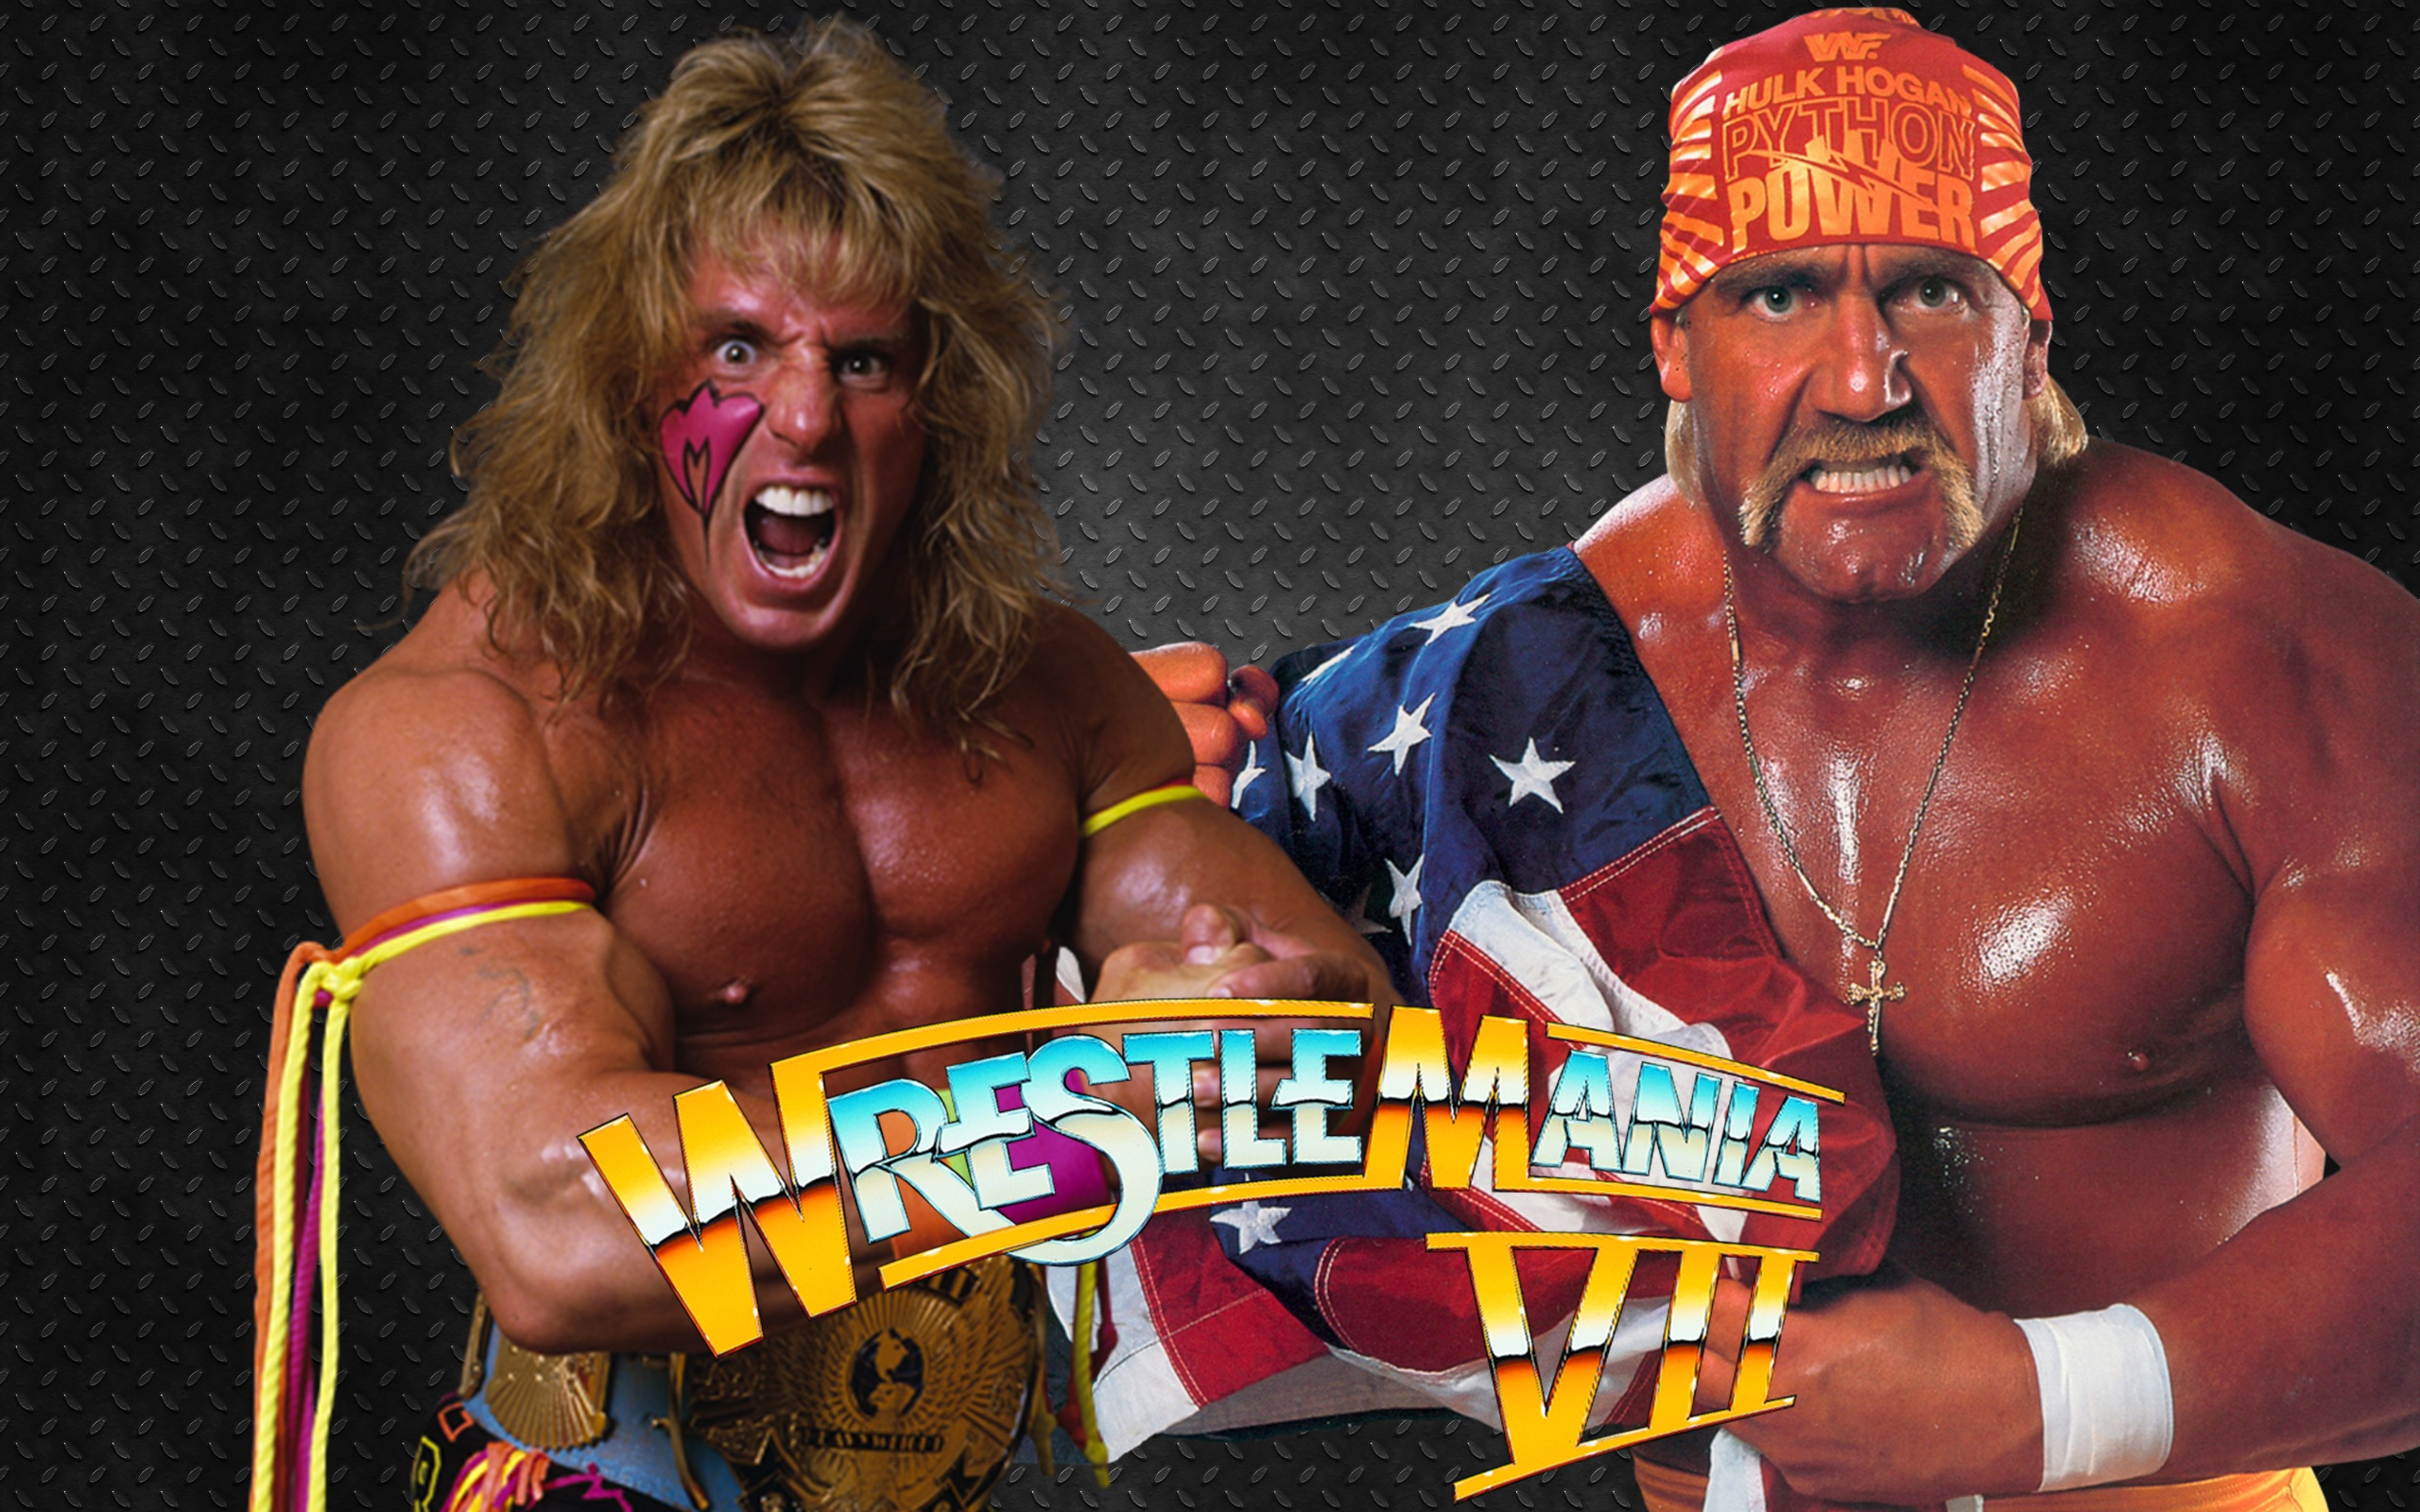 The Ultimate Warrior & Hulk Hogan WrestleMania 7